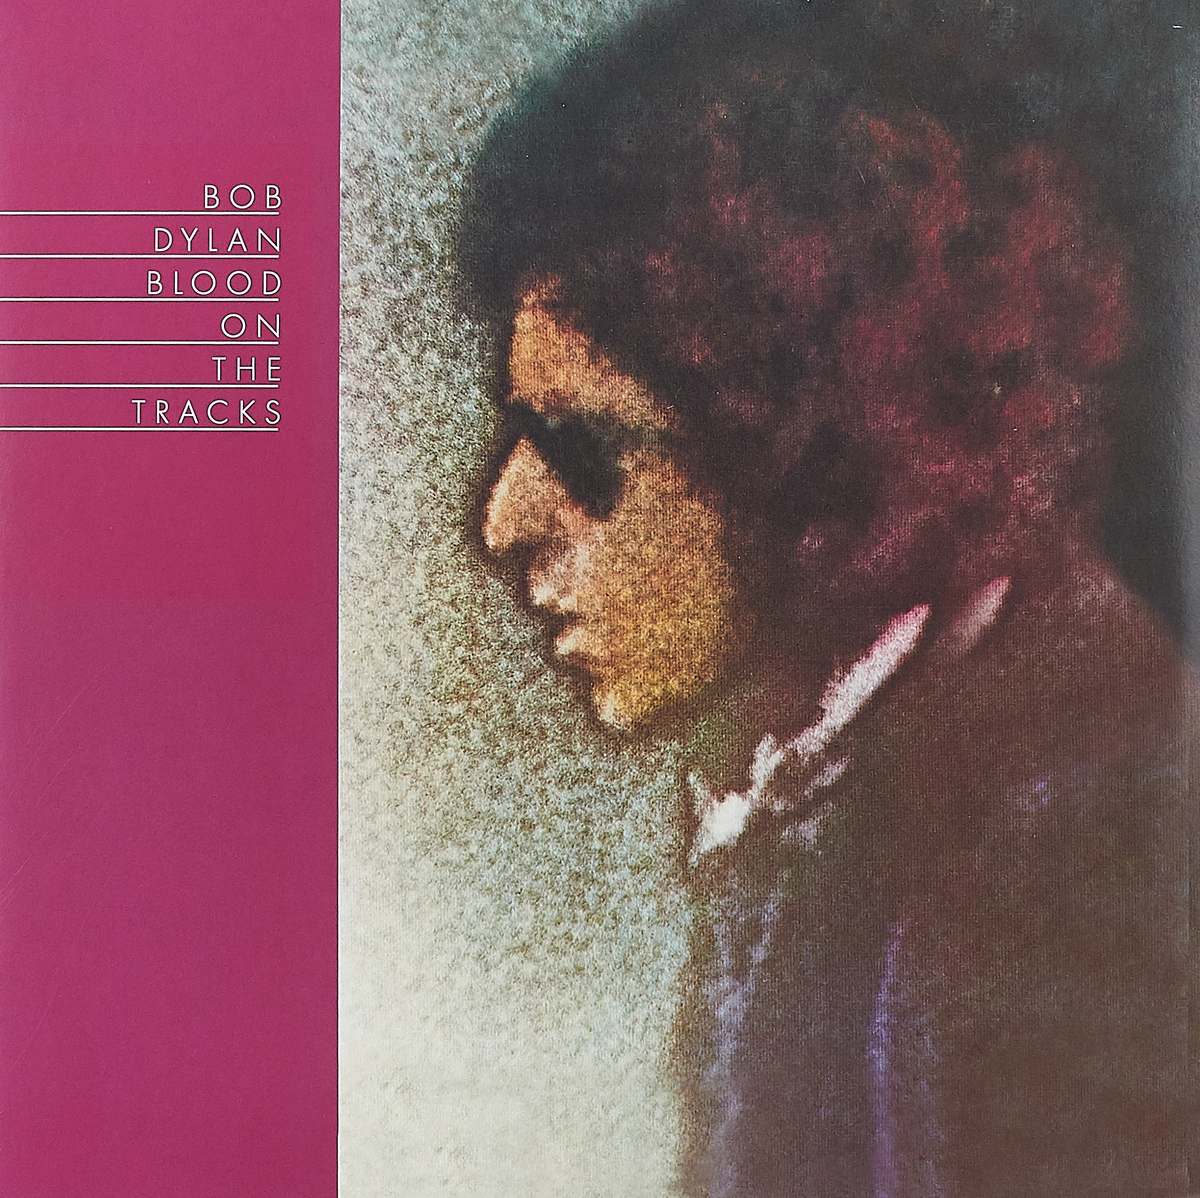 Боб Дилан Bob Dylan. Blood On The Tracks (LP) боб дилан dylan bob another side of bob dylan lp